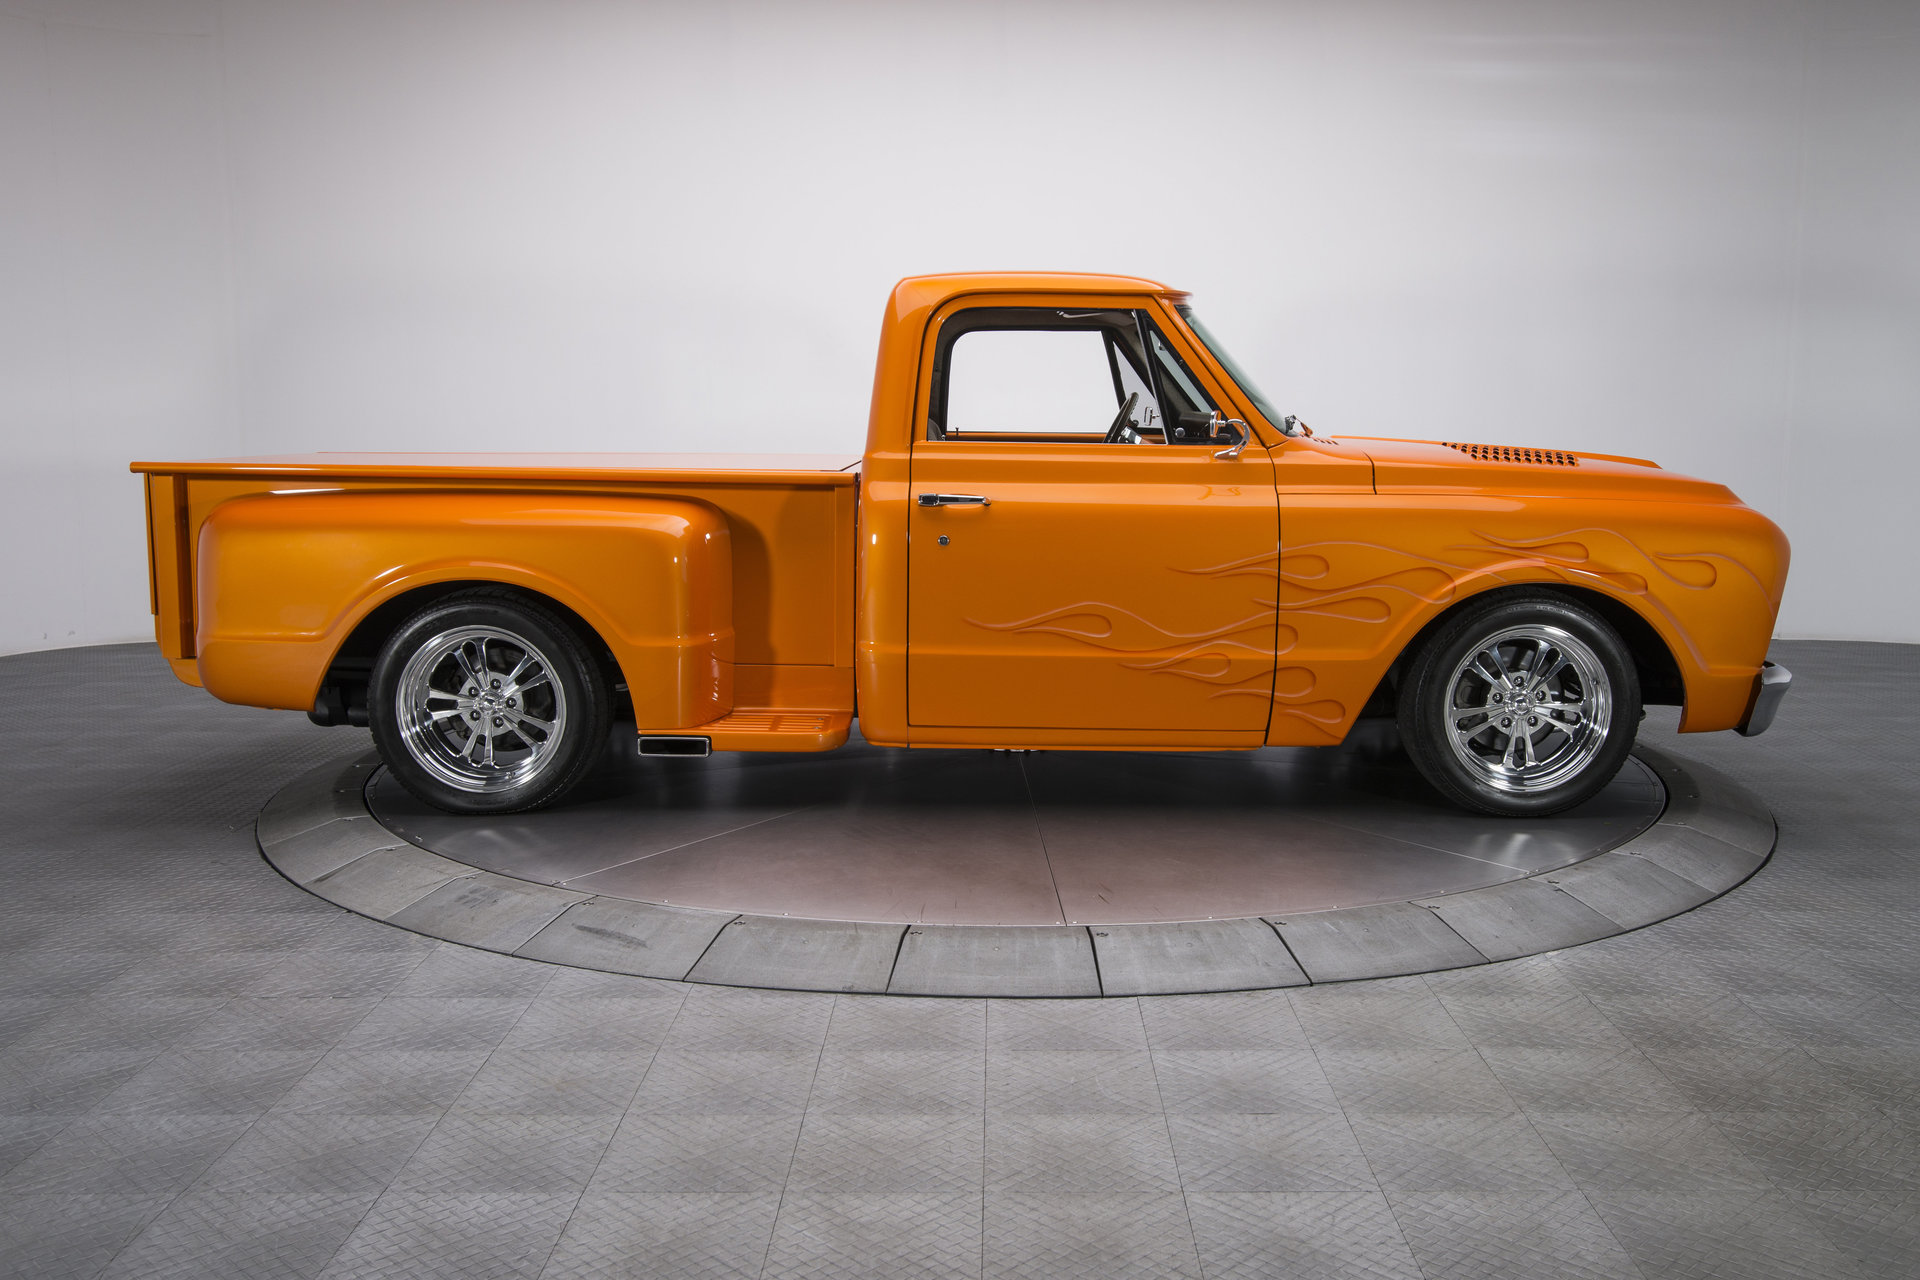 1968 Chevrolet C10 Pickup Truck For Sale 91874 Mcg Chevy Pick Up